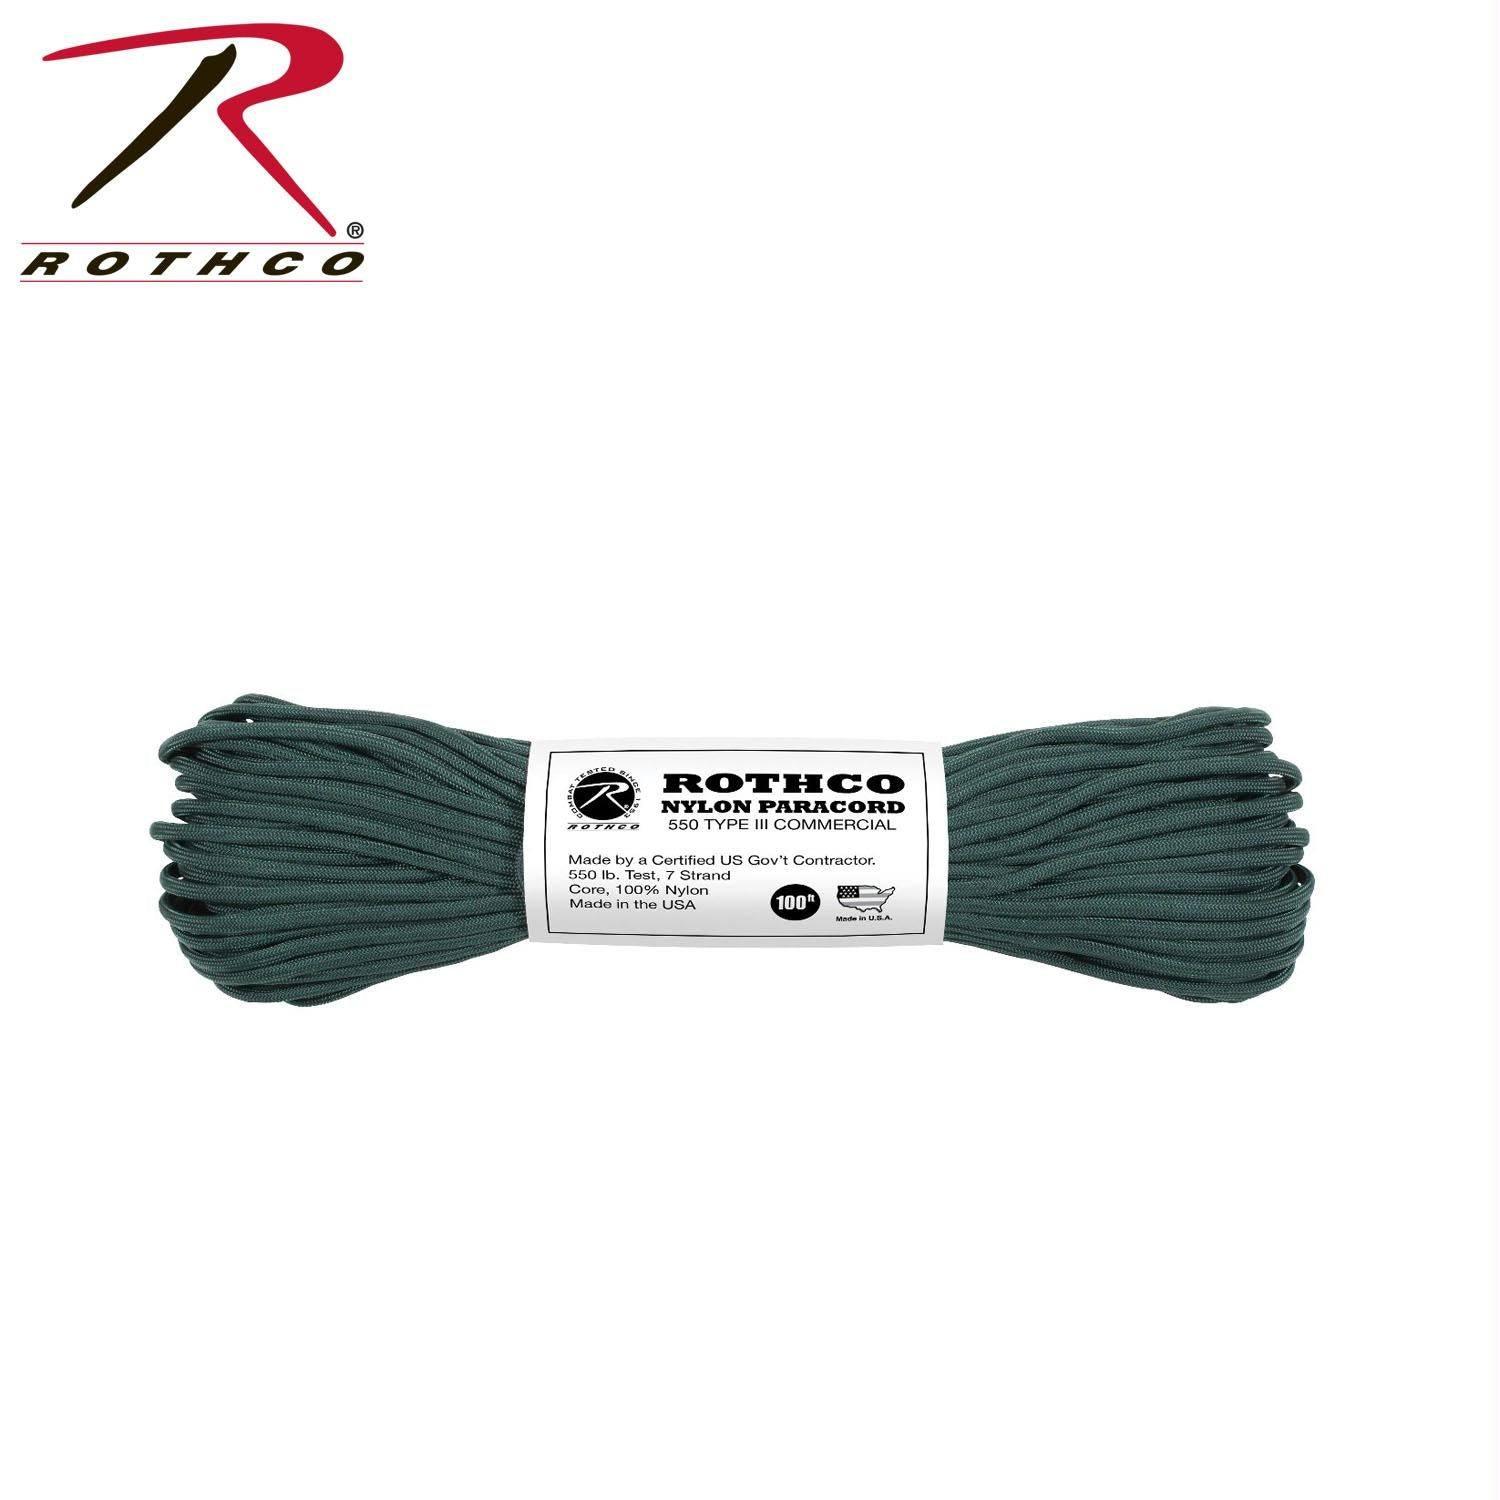 Rothco Nylon Paracord Type III 550 LB 100FT - Hunter Green